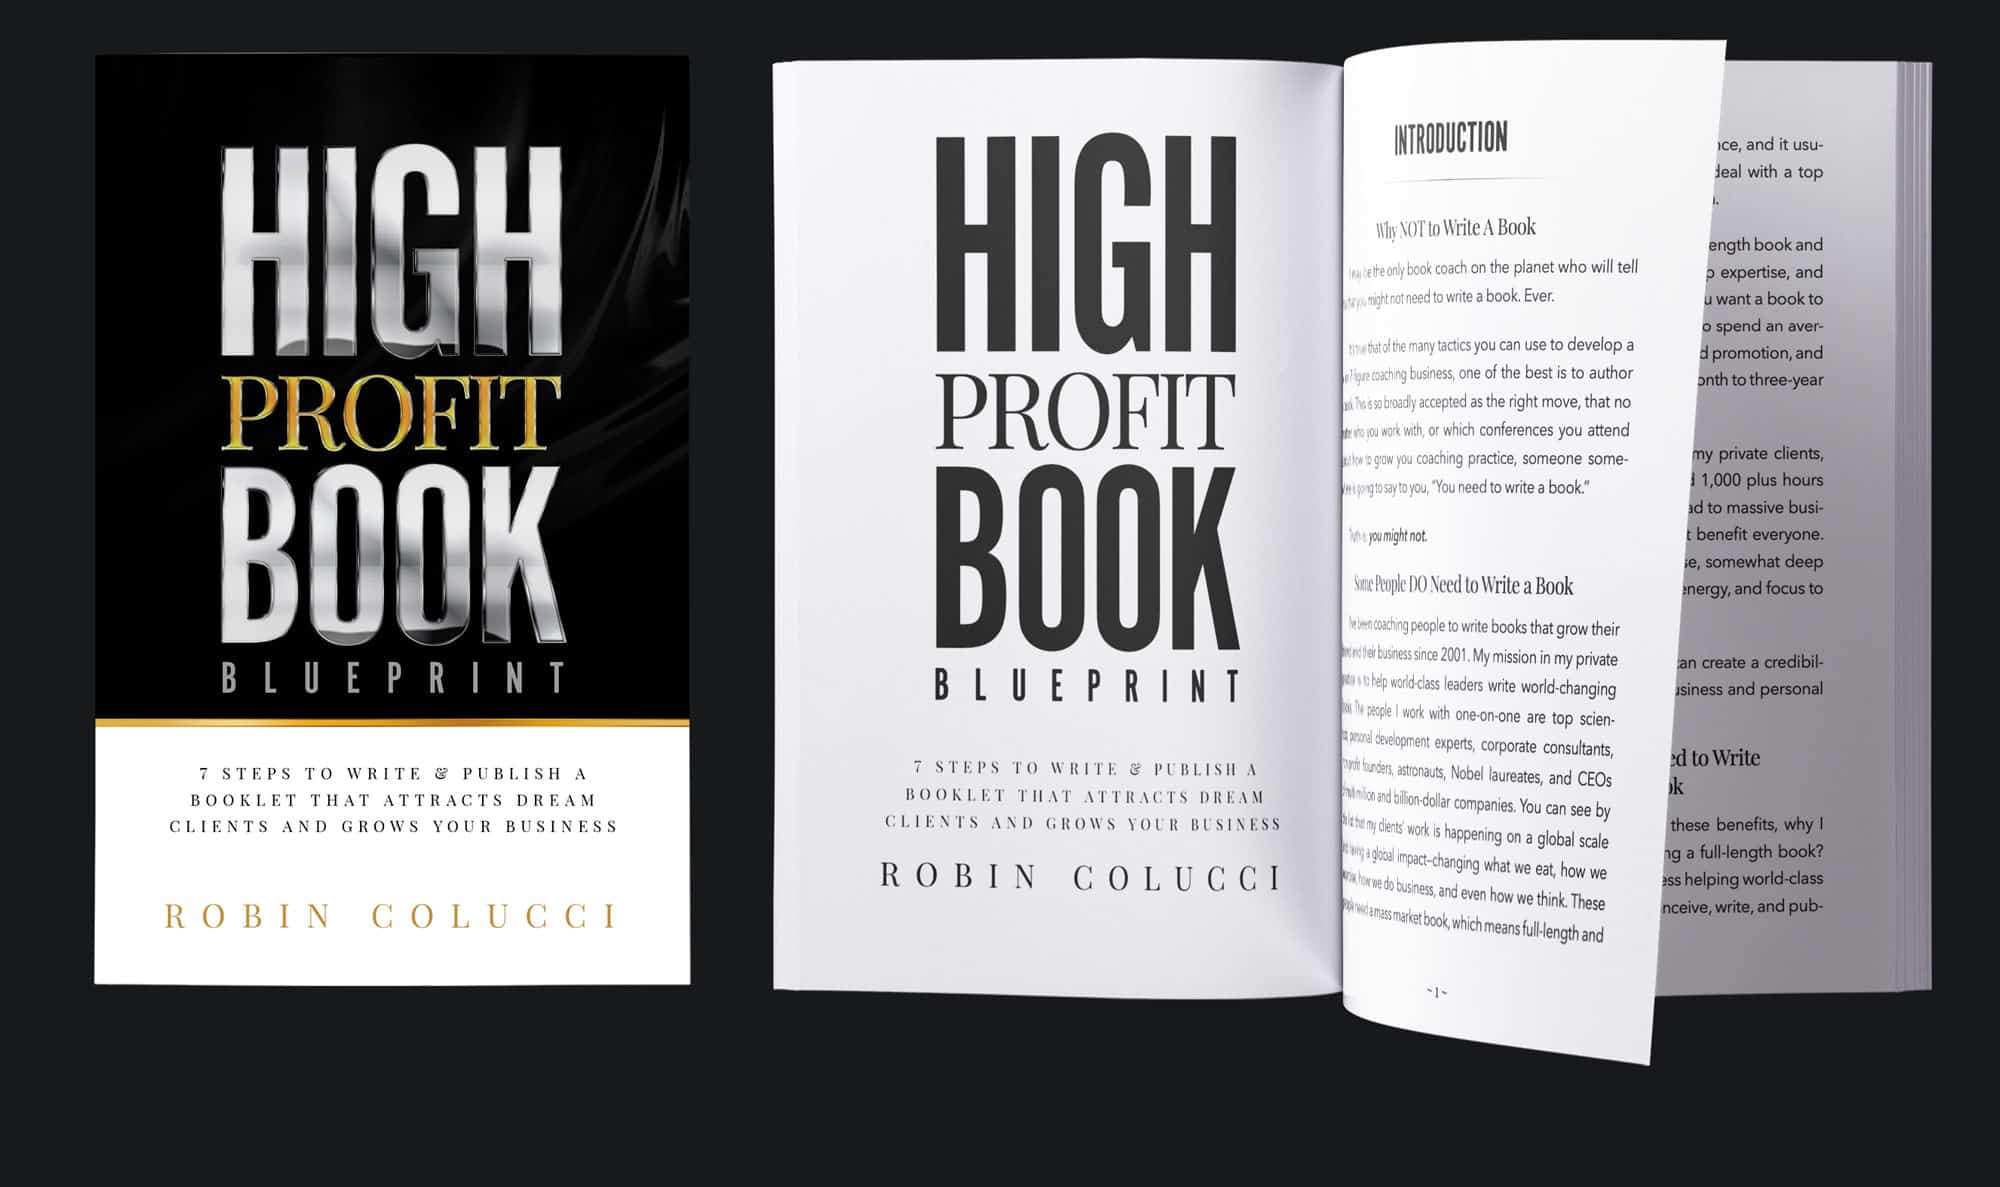 High Profit Book by Robin Colucci Cover